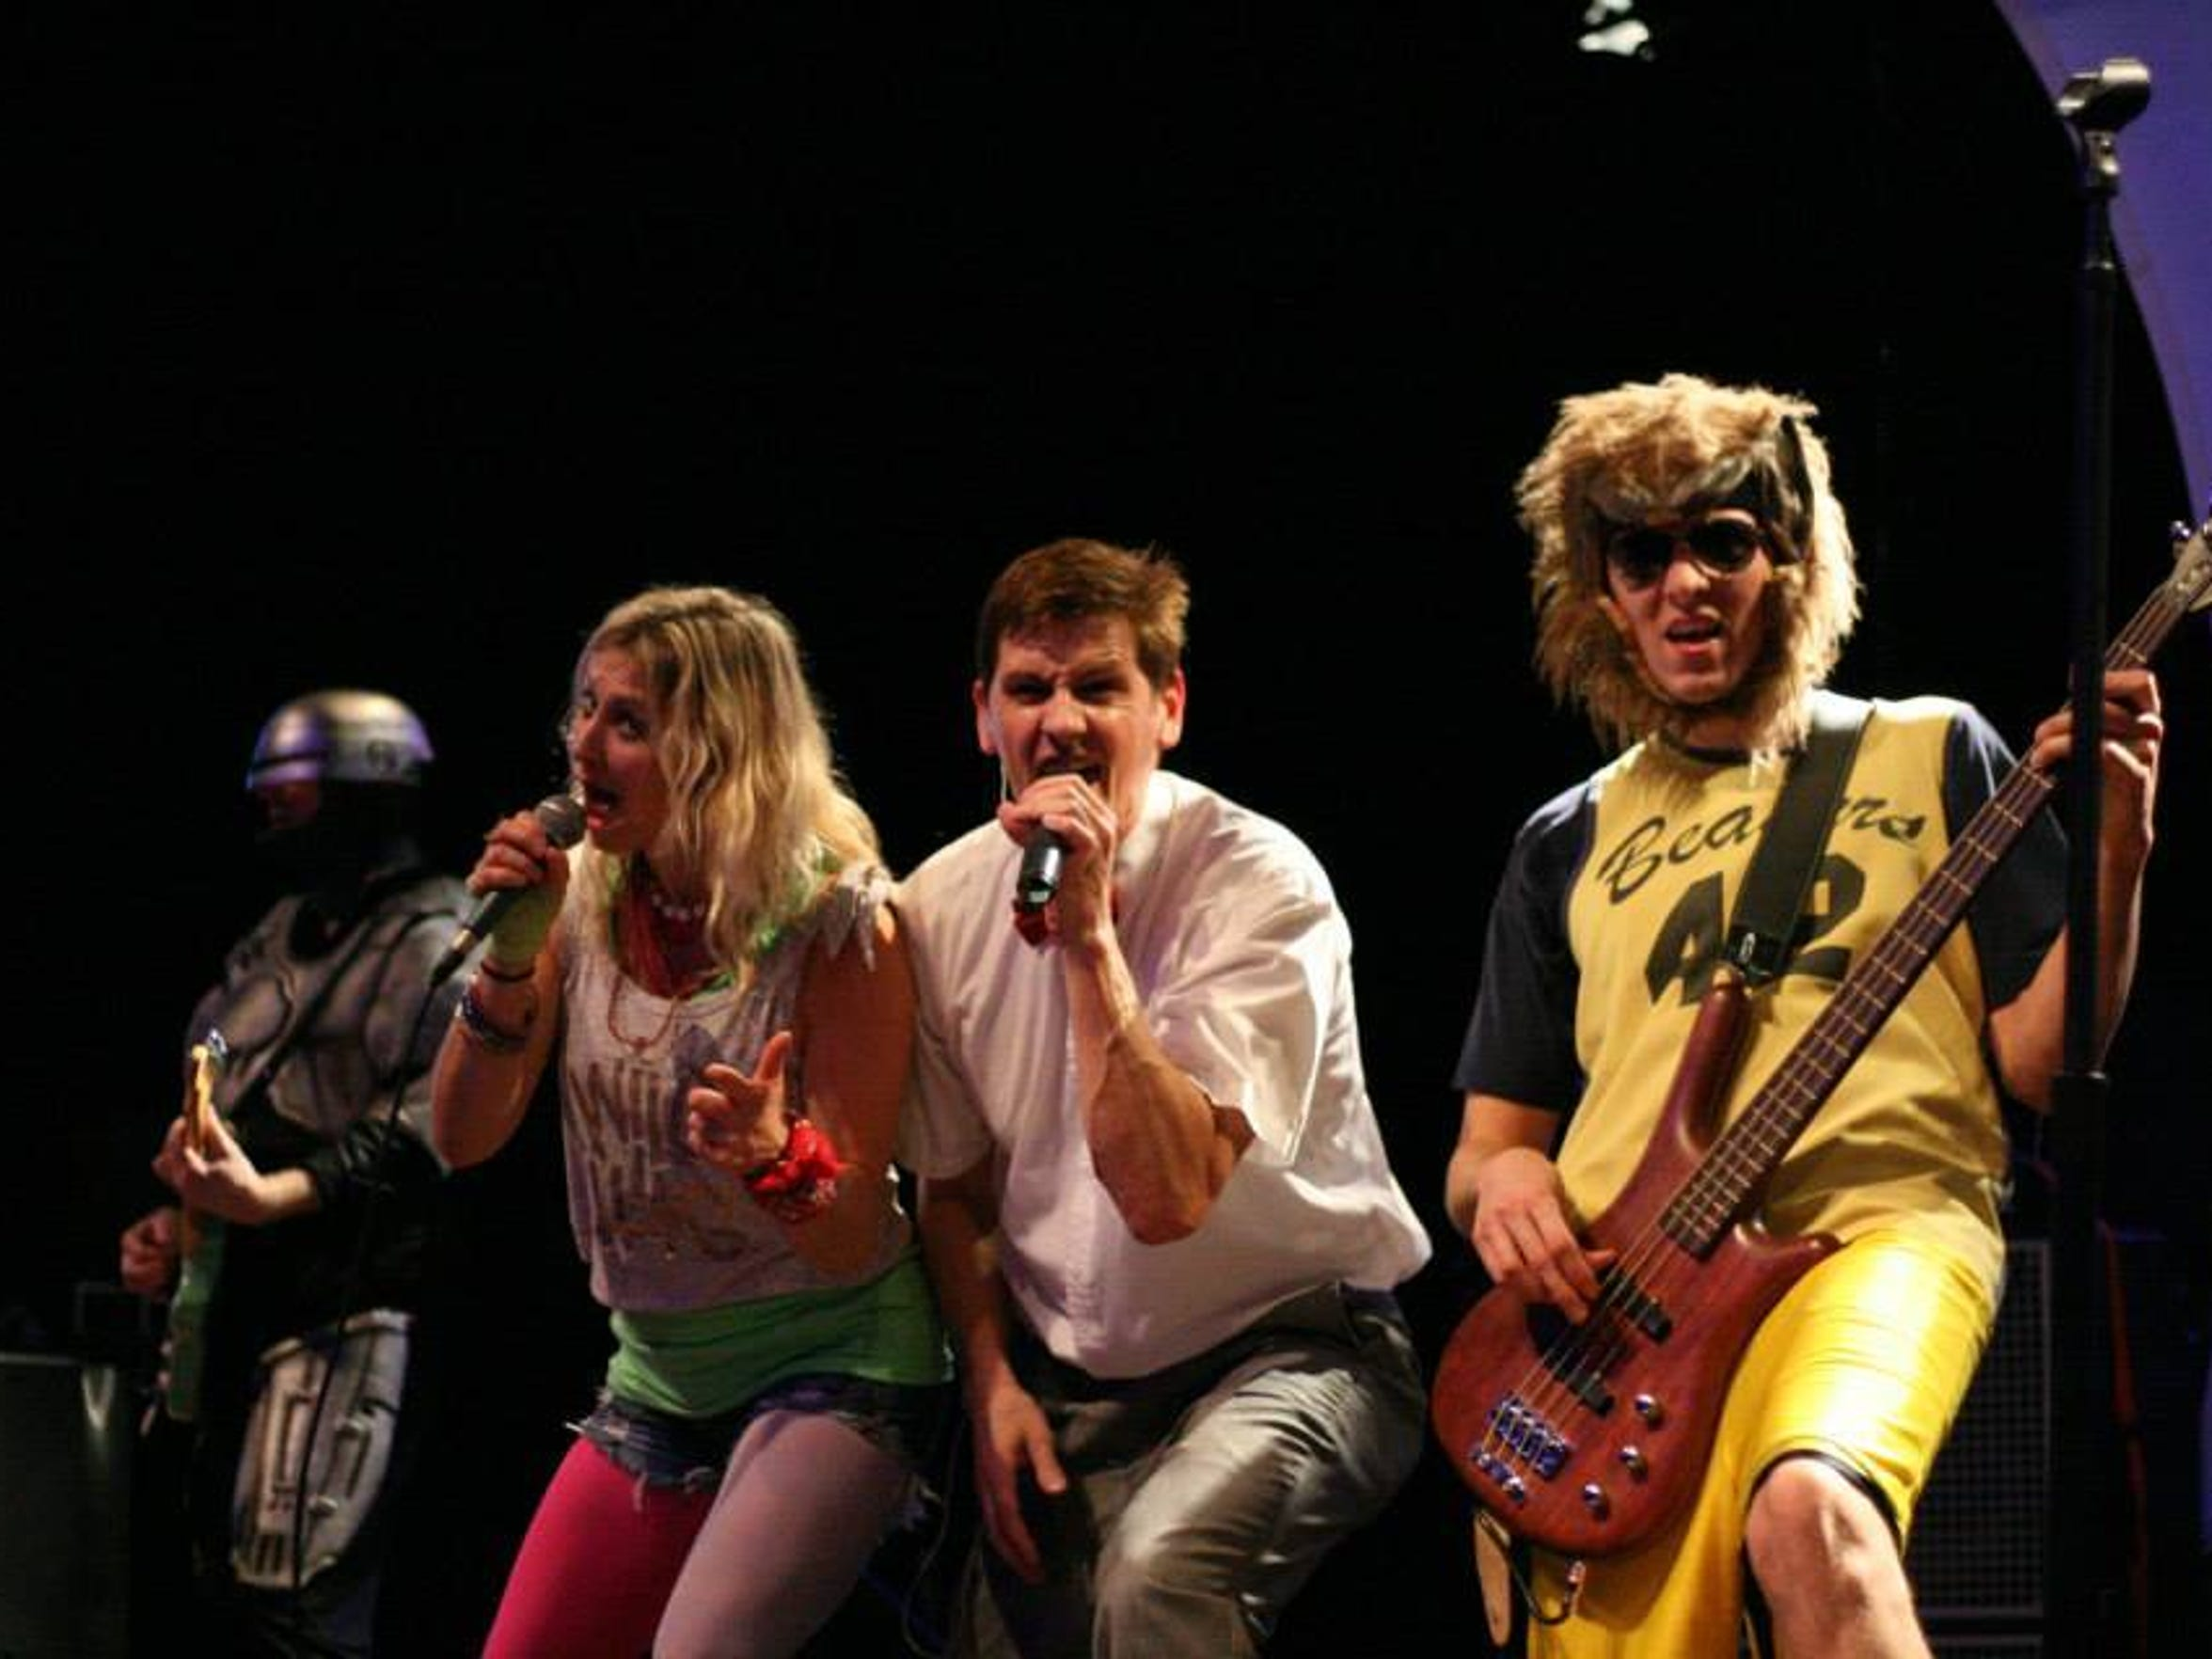 Popular 1980s cover band Rubik's Groove will perform at HolidayFest.